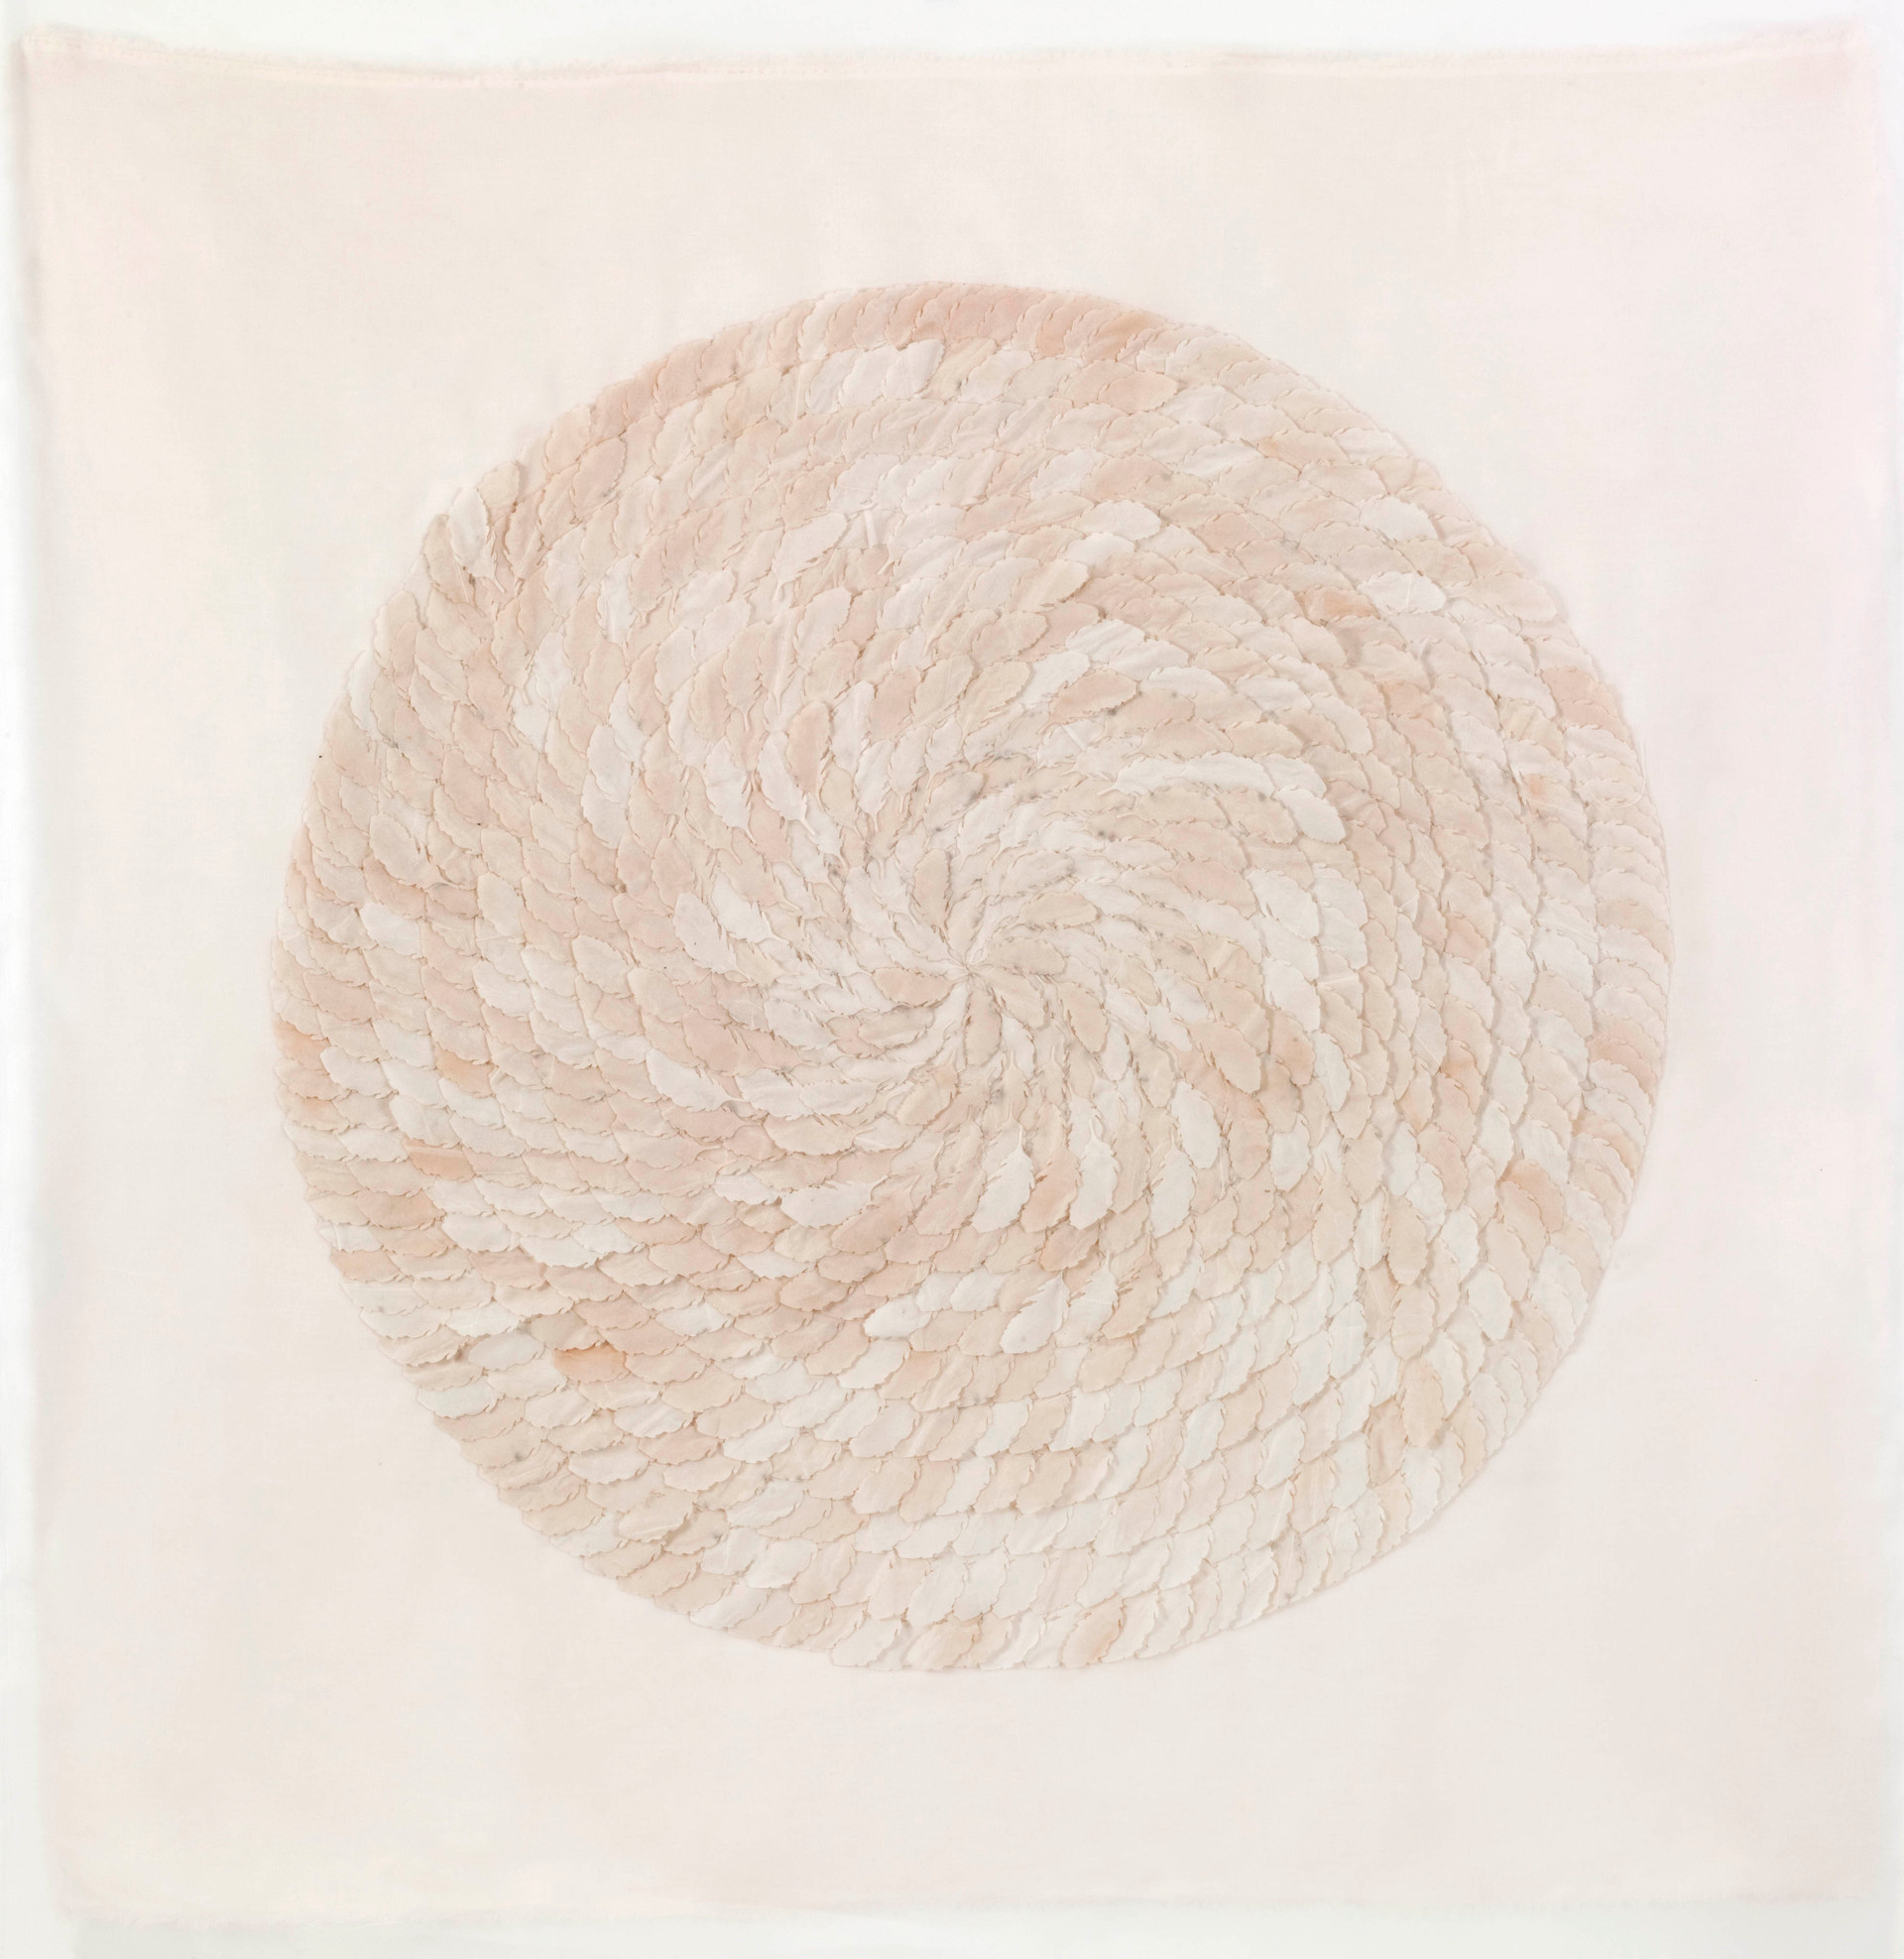 Natural feather/2012/Silk Paper/110x110 cm